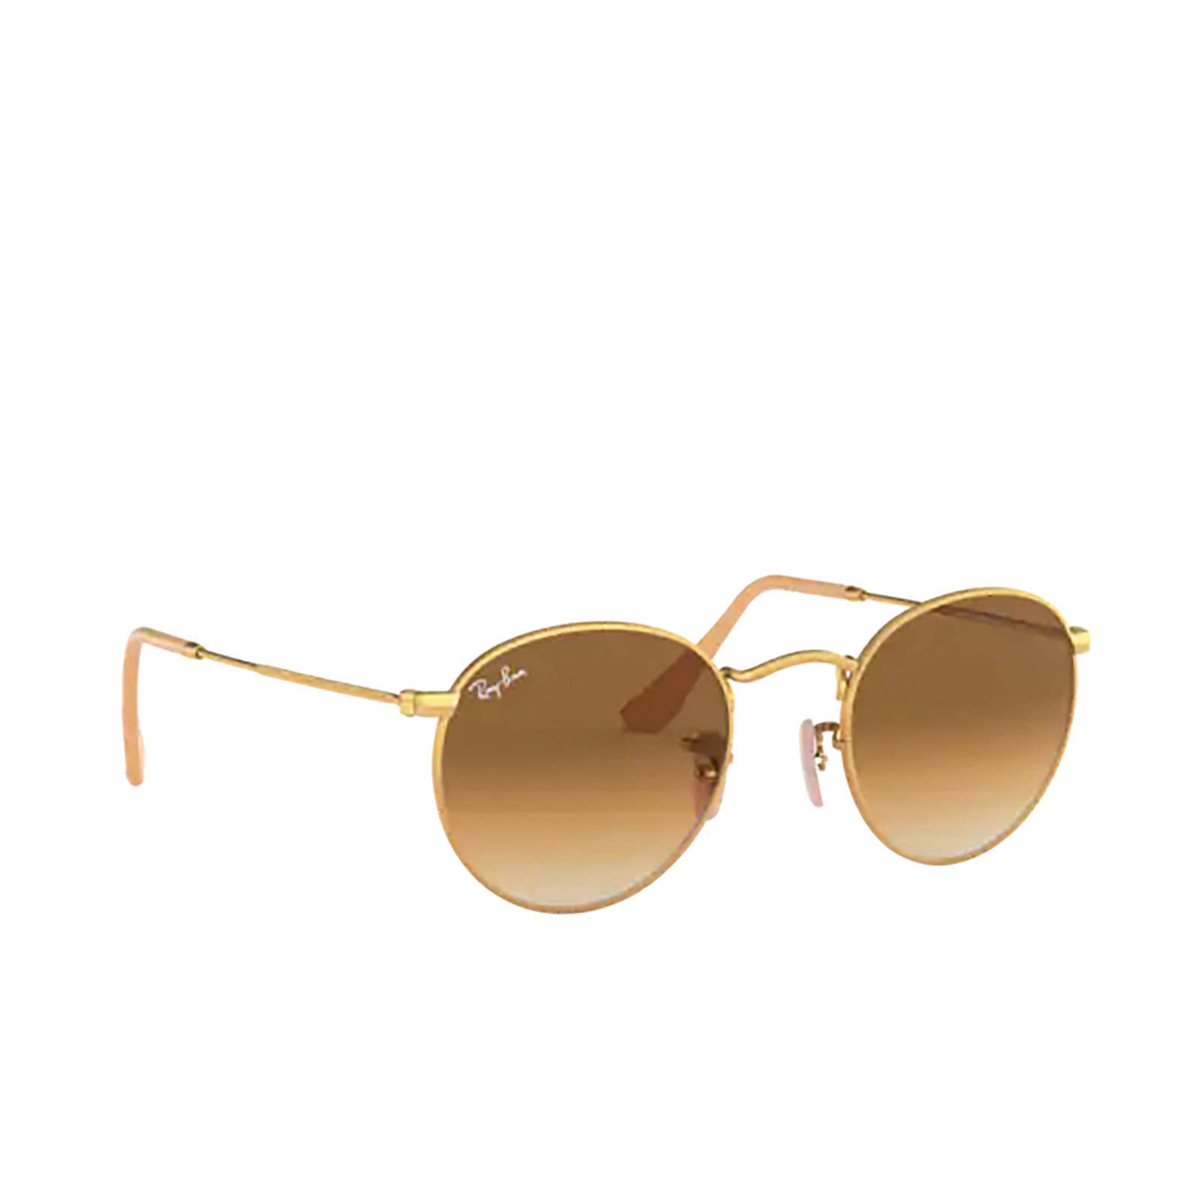 Ray-Ban® Round Sunglasses: Round Metal RB3447 color Matte Arista 112/51 - three-quarters view.